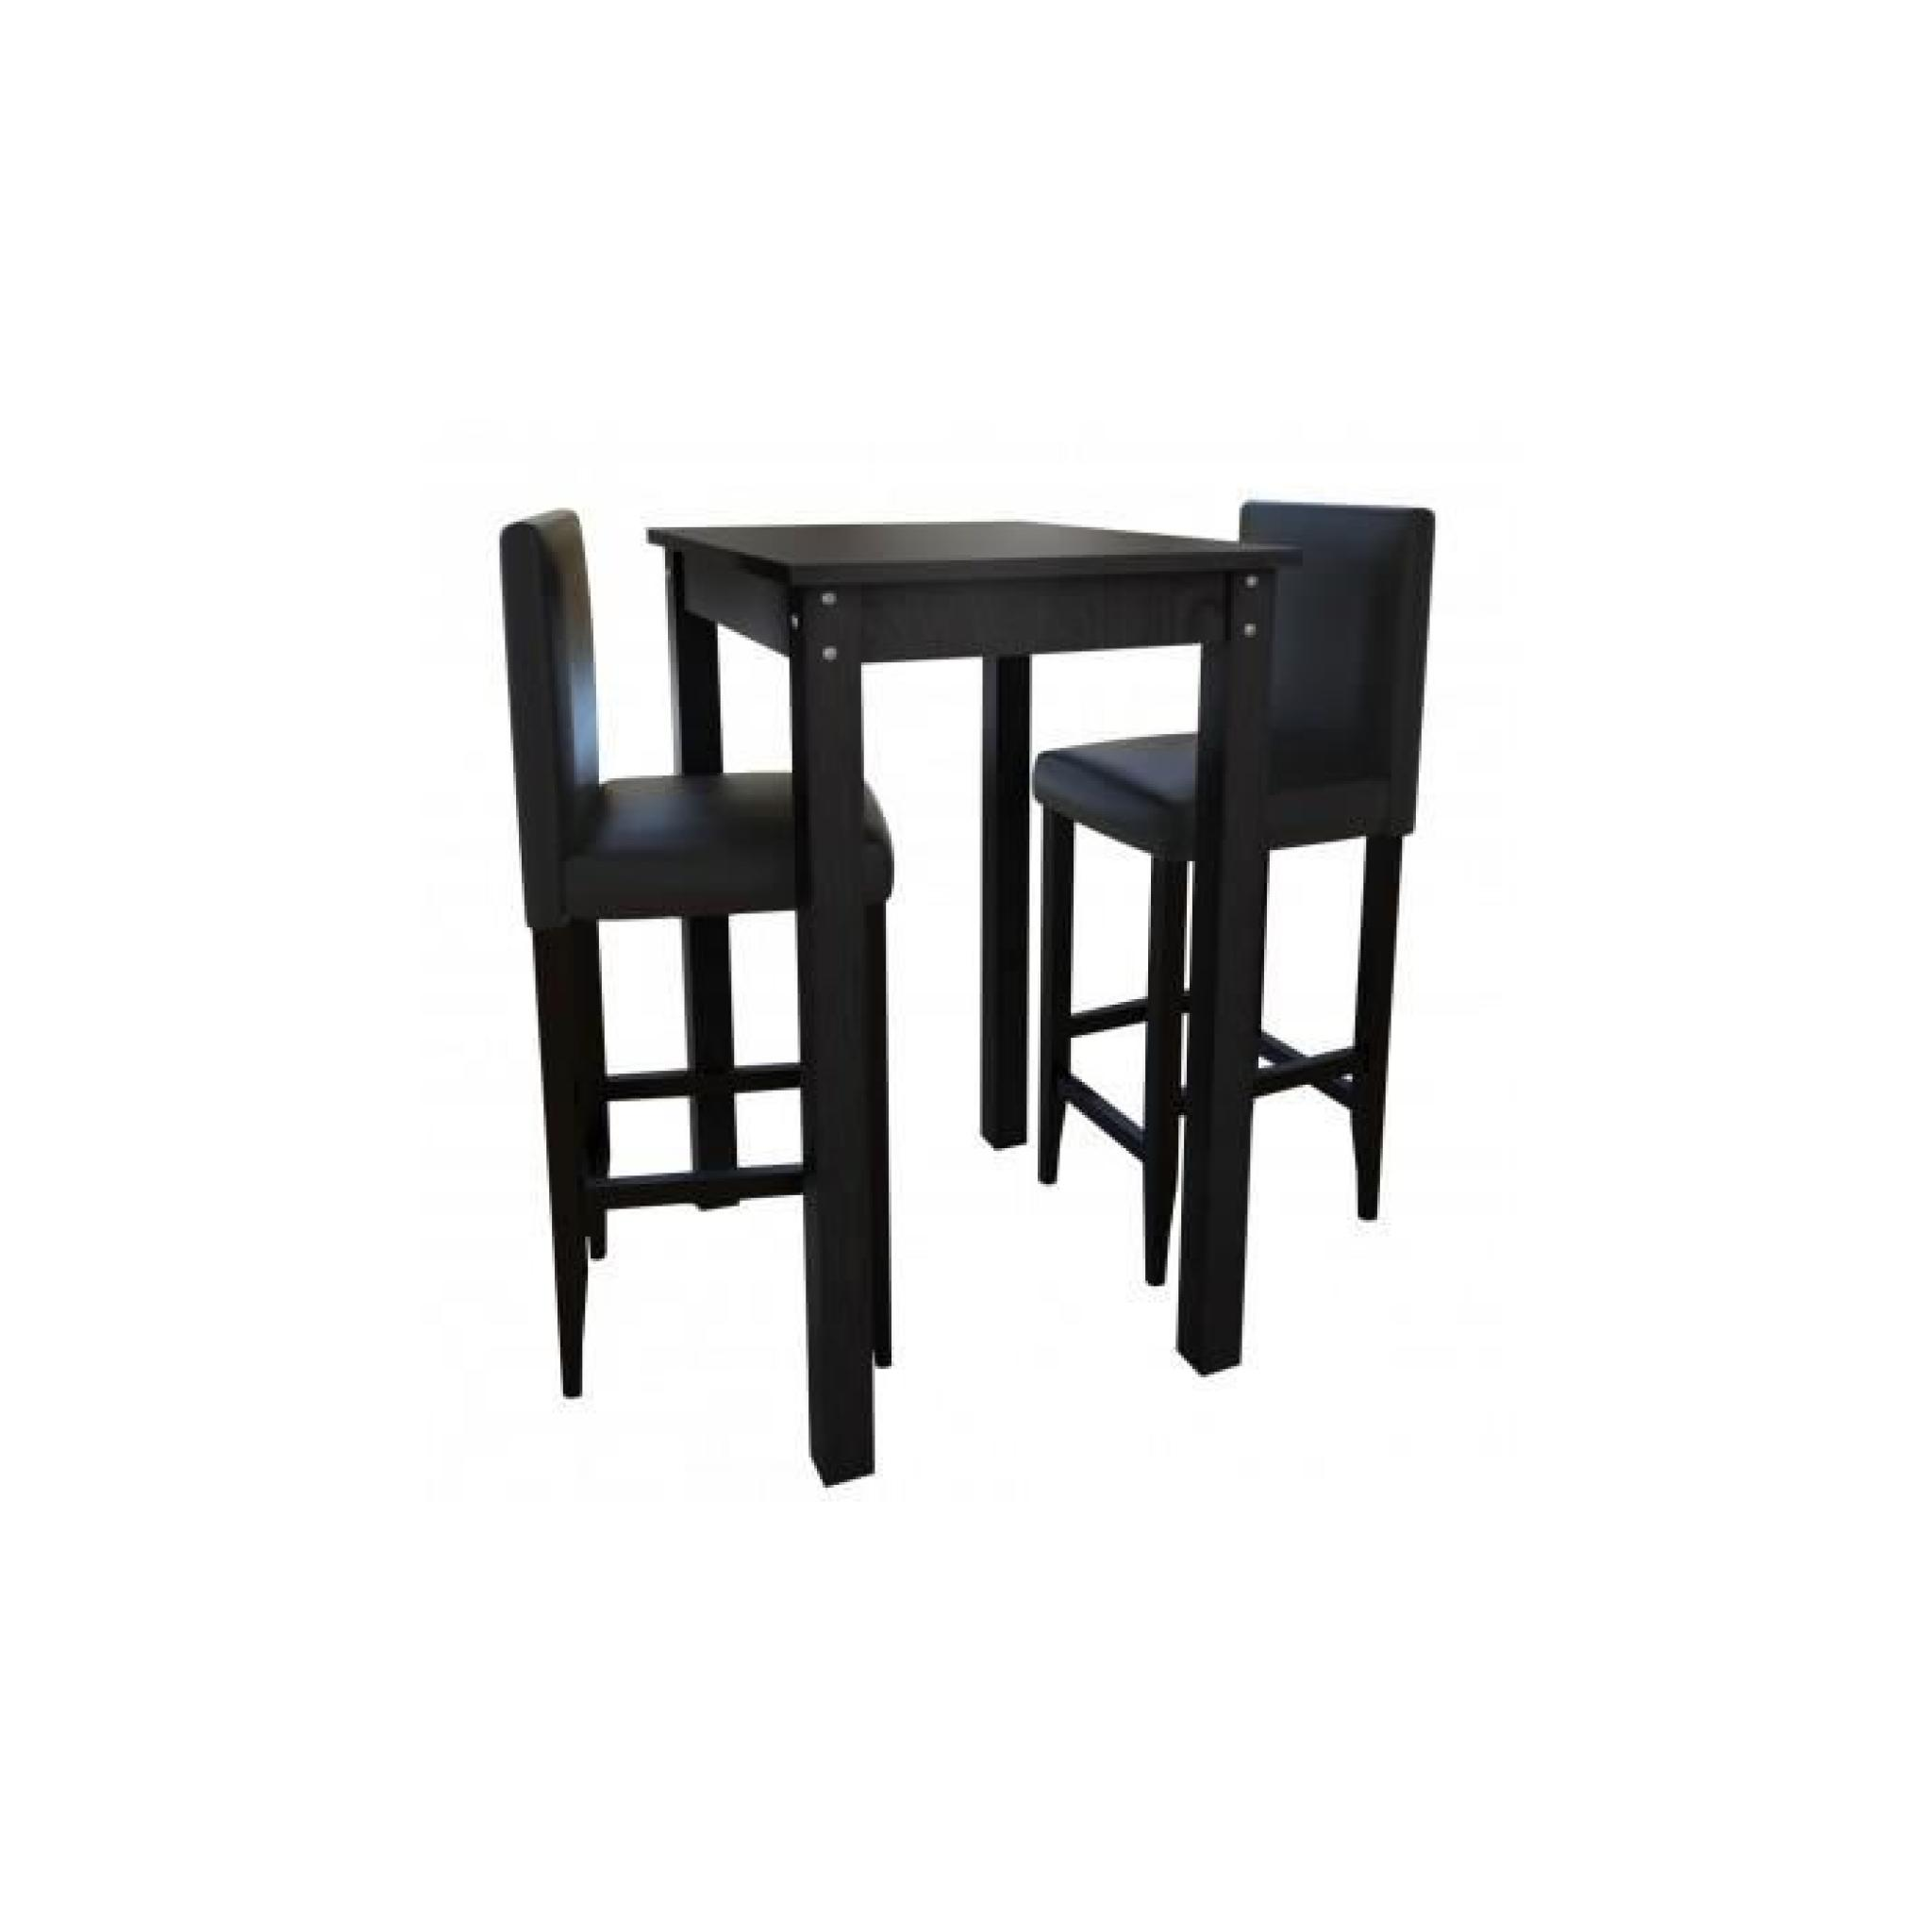 Set De 1 Table Bar Et 4 Tabourets Noir Set De 1 Table Et 2 Tabourets Noir Achat Vente Table